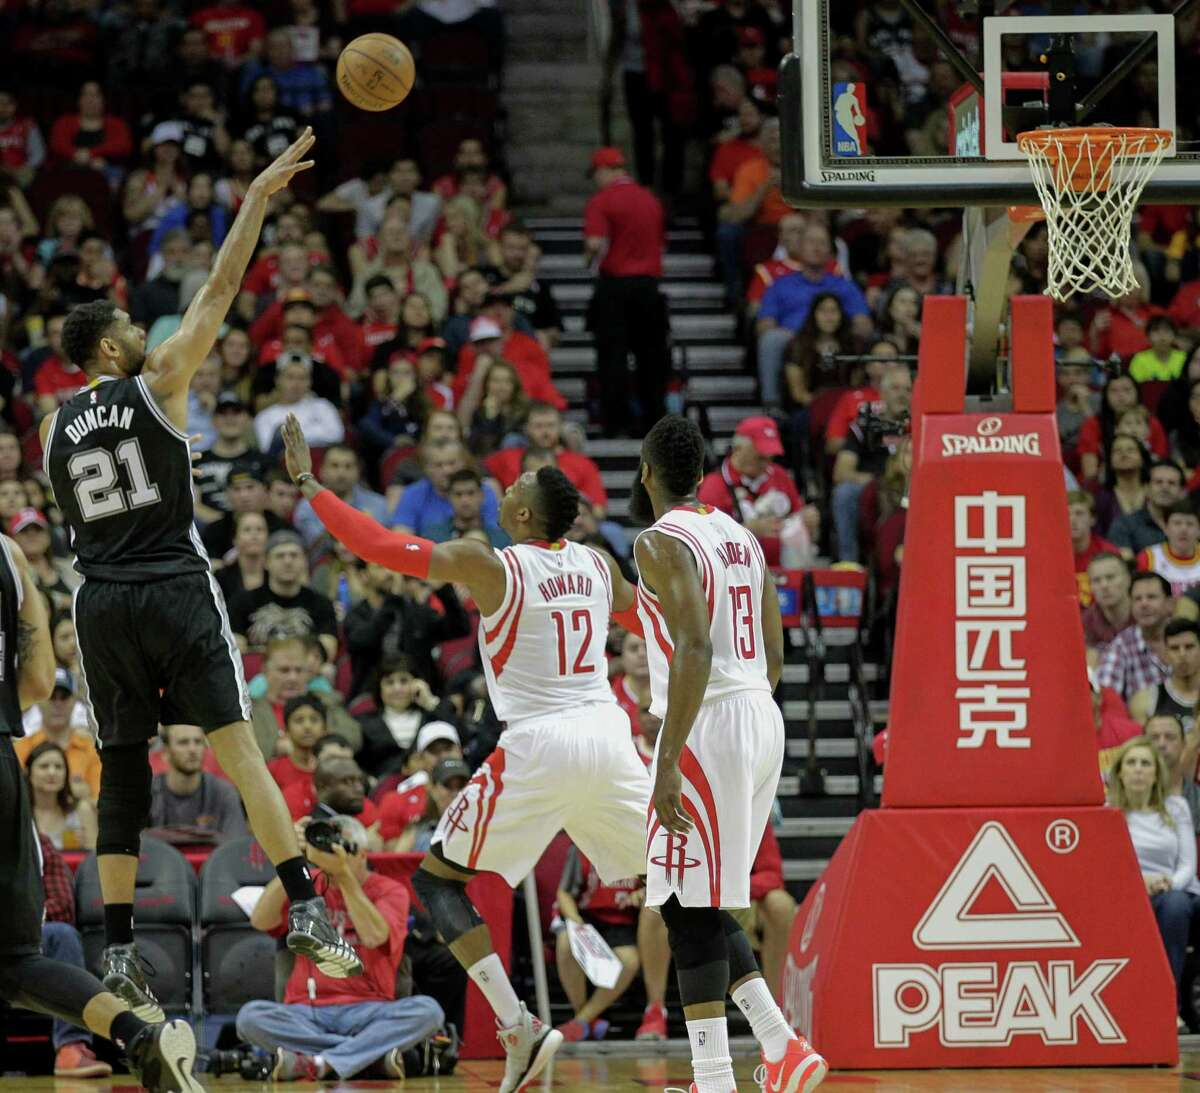 San Antonio Spurs forward Tim Duncan (21) shoots over Houston Rockets center Dwight Howard (12) as guard James Harden (13) looks on during the first half of an NBA basketball game Friday, April 10, 2015, in Houston.